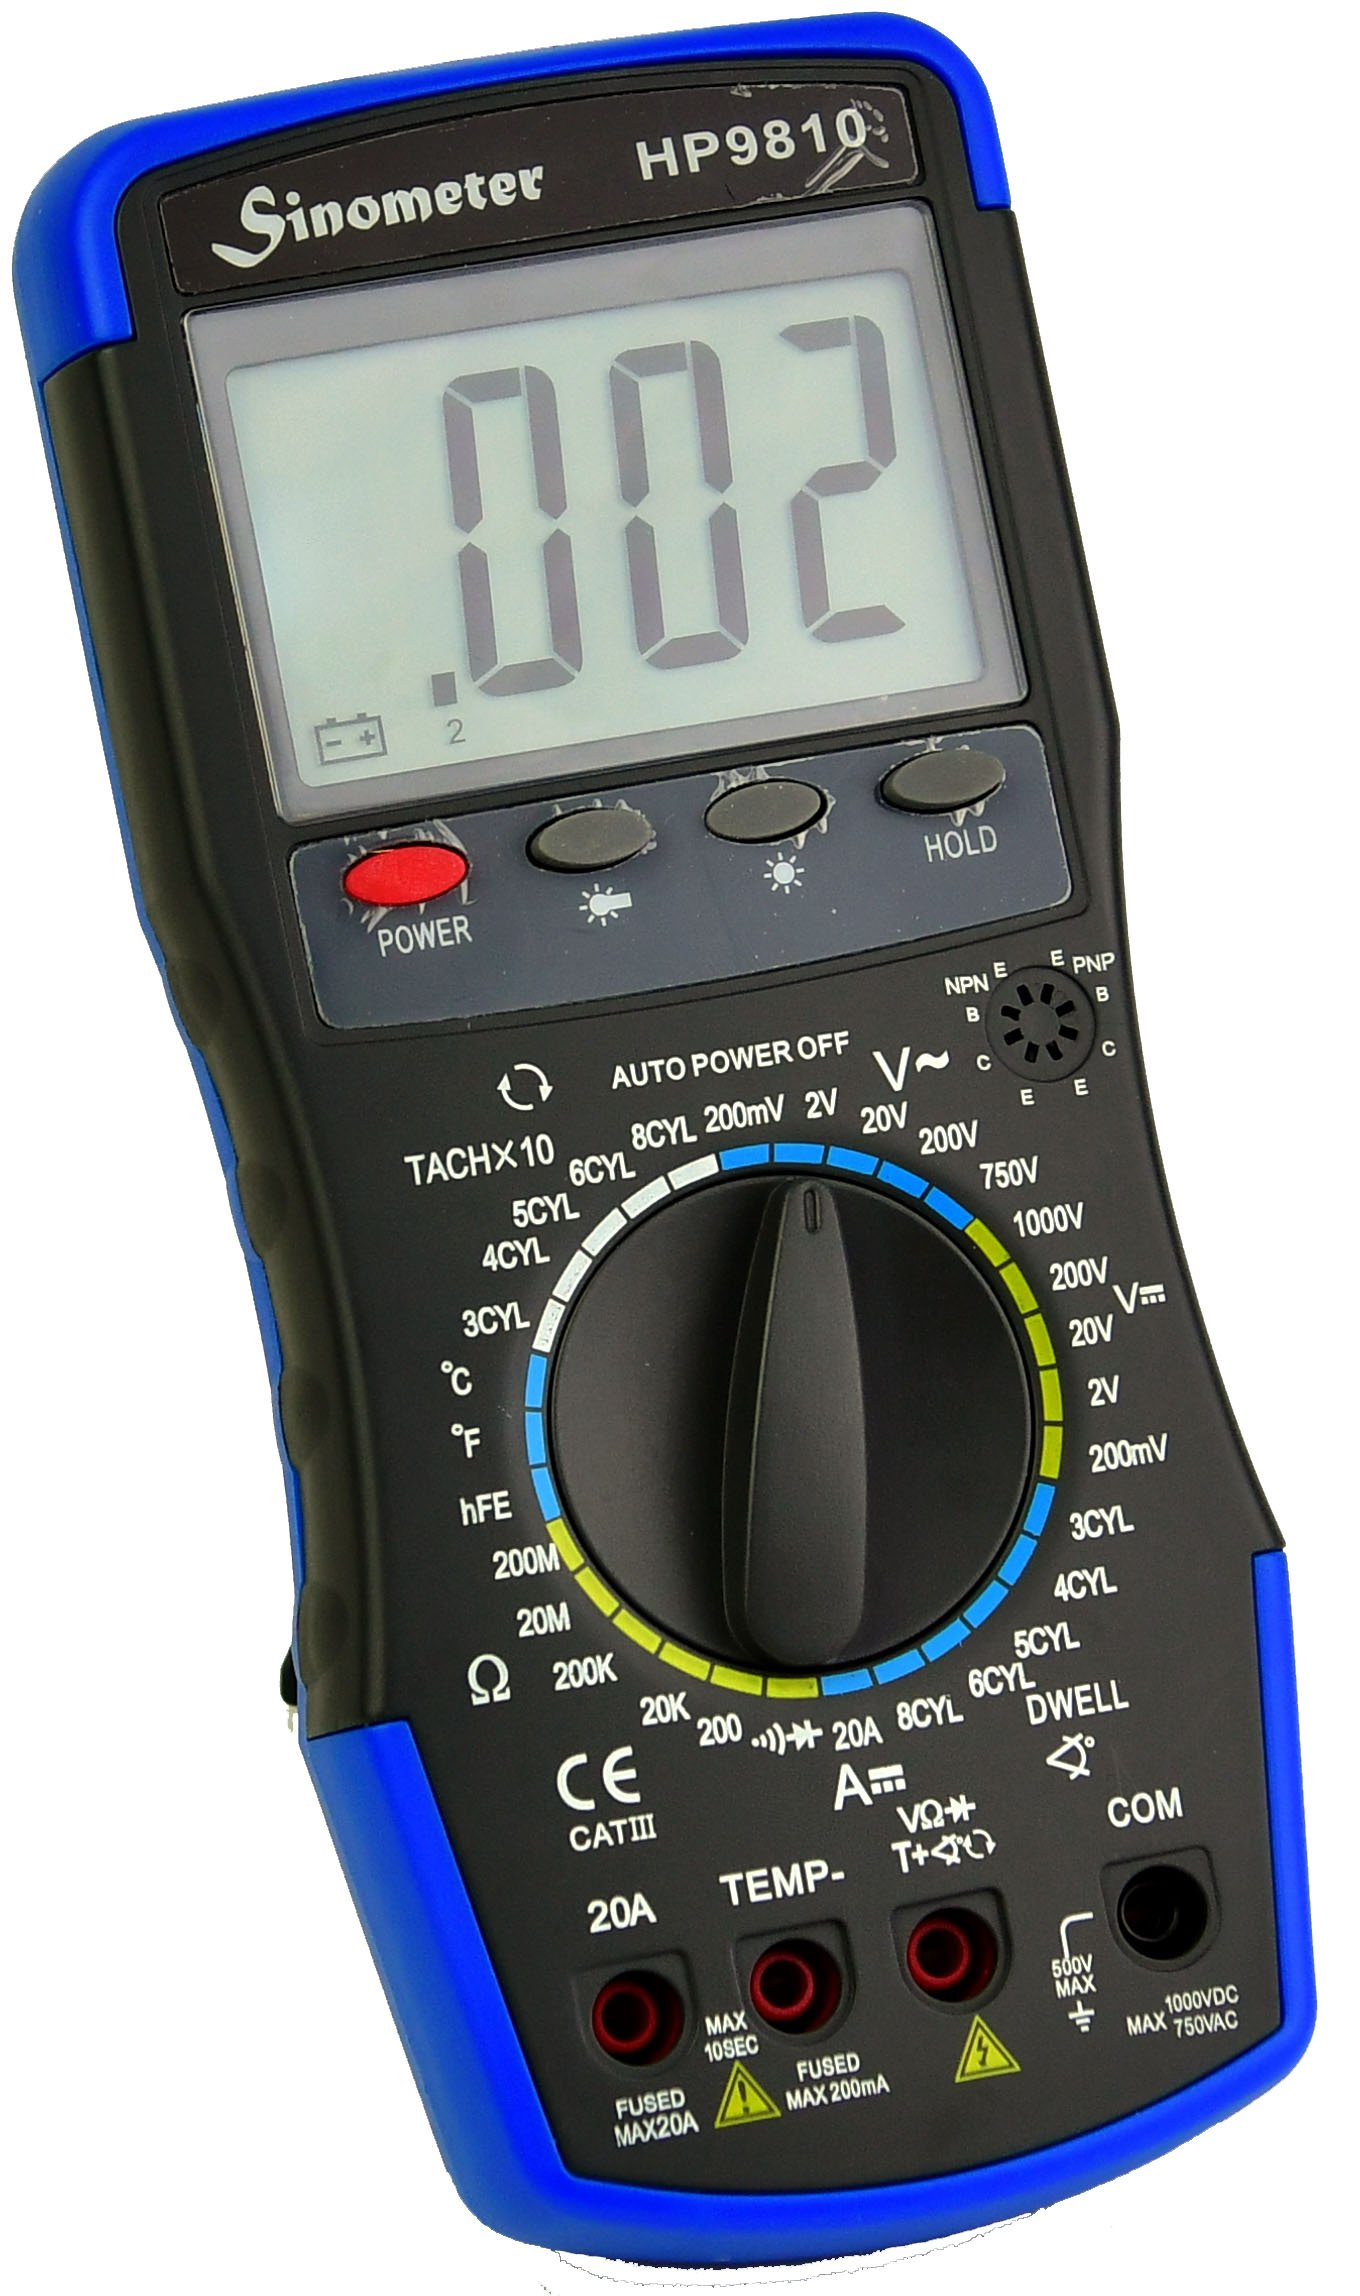 Sinometer HP9810 Automotive Digital Multimeter with Thermometer and Carrying Case by Sinometer (Image #1)